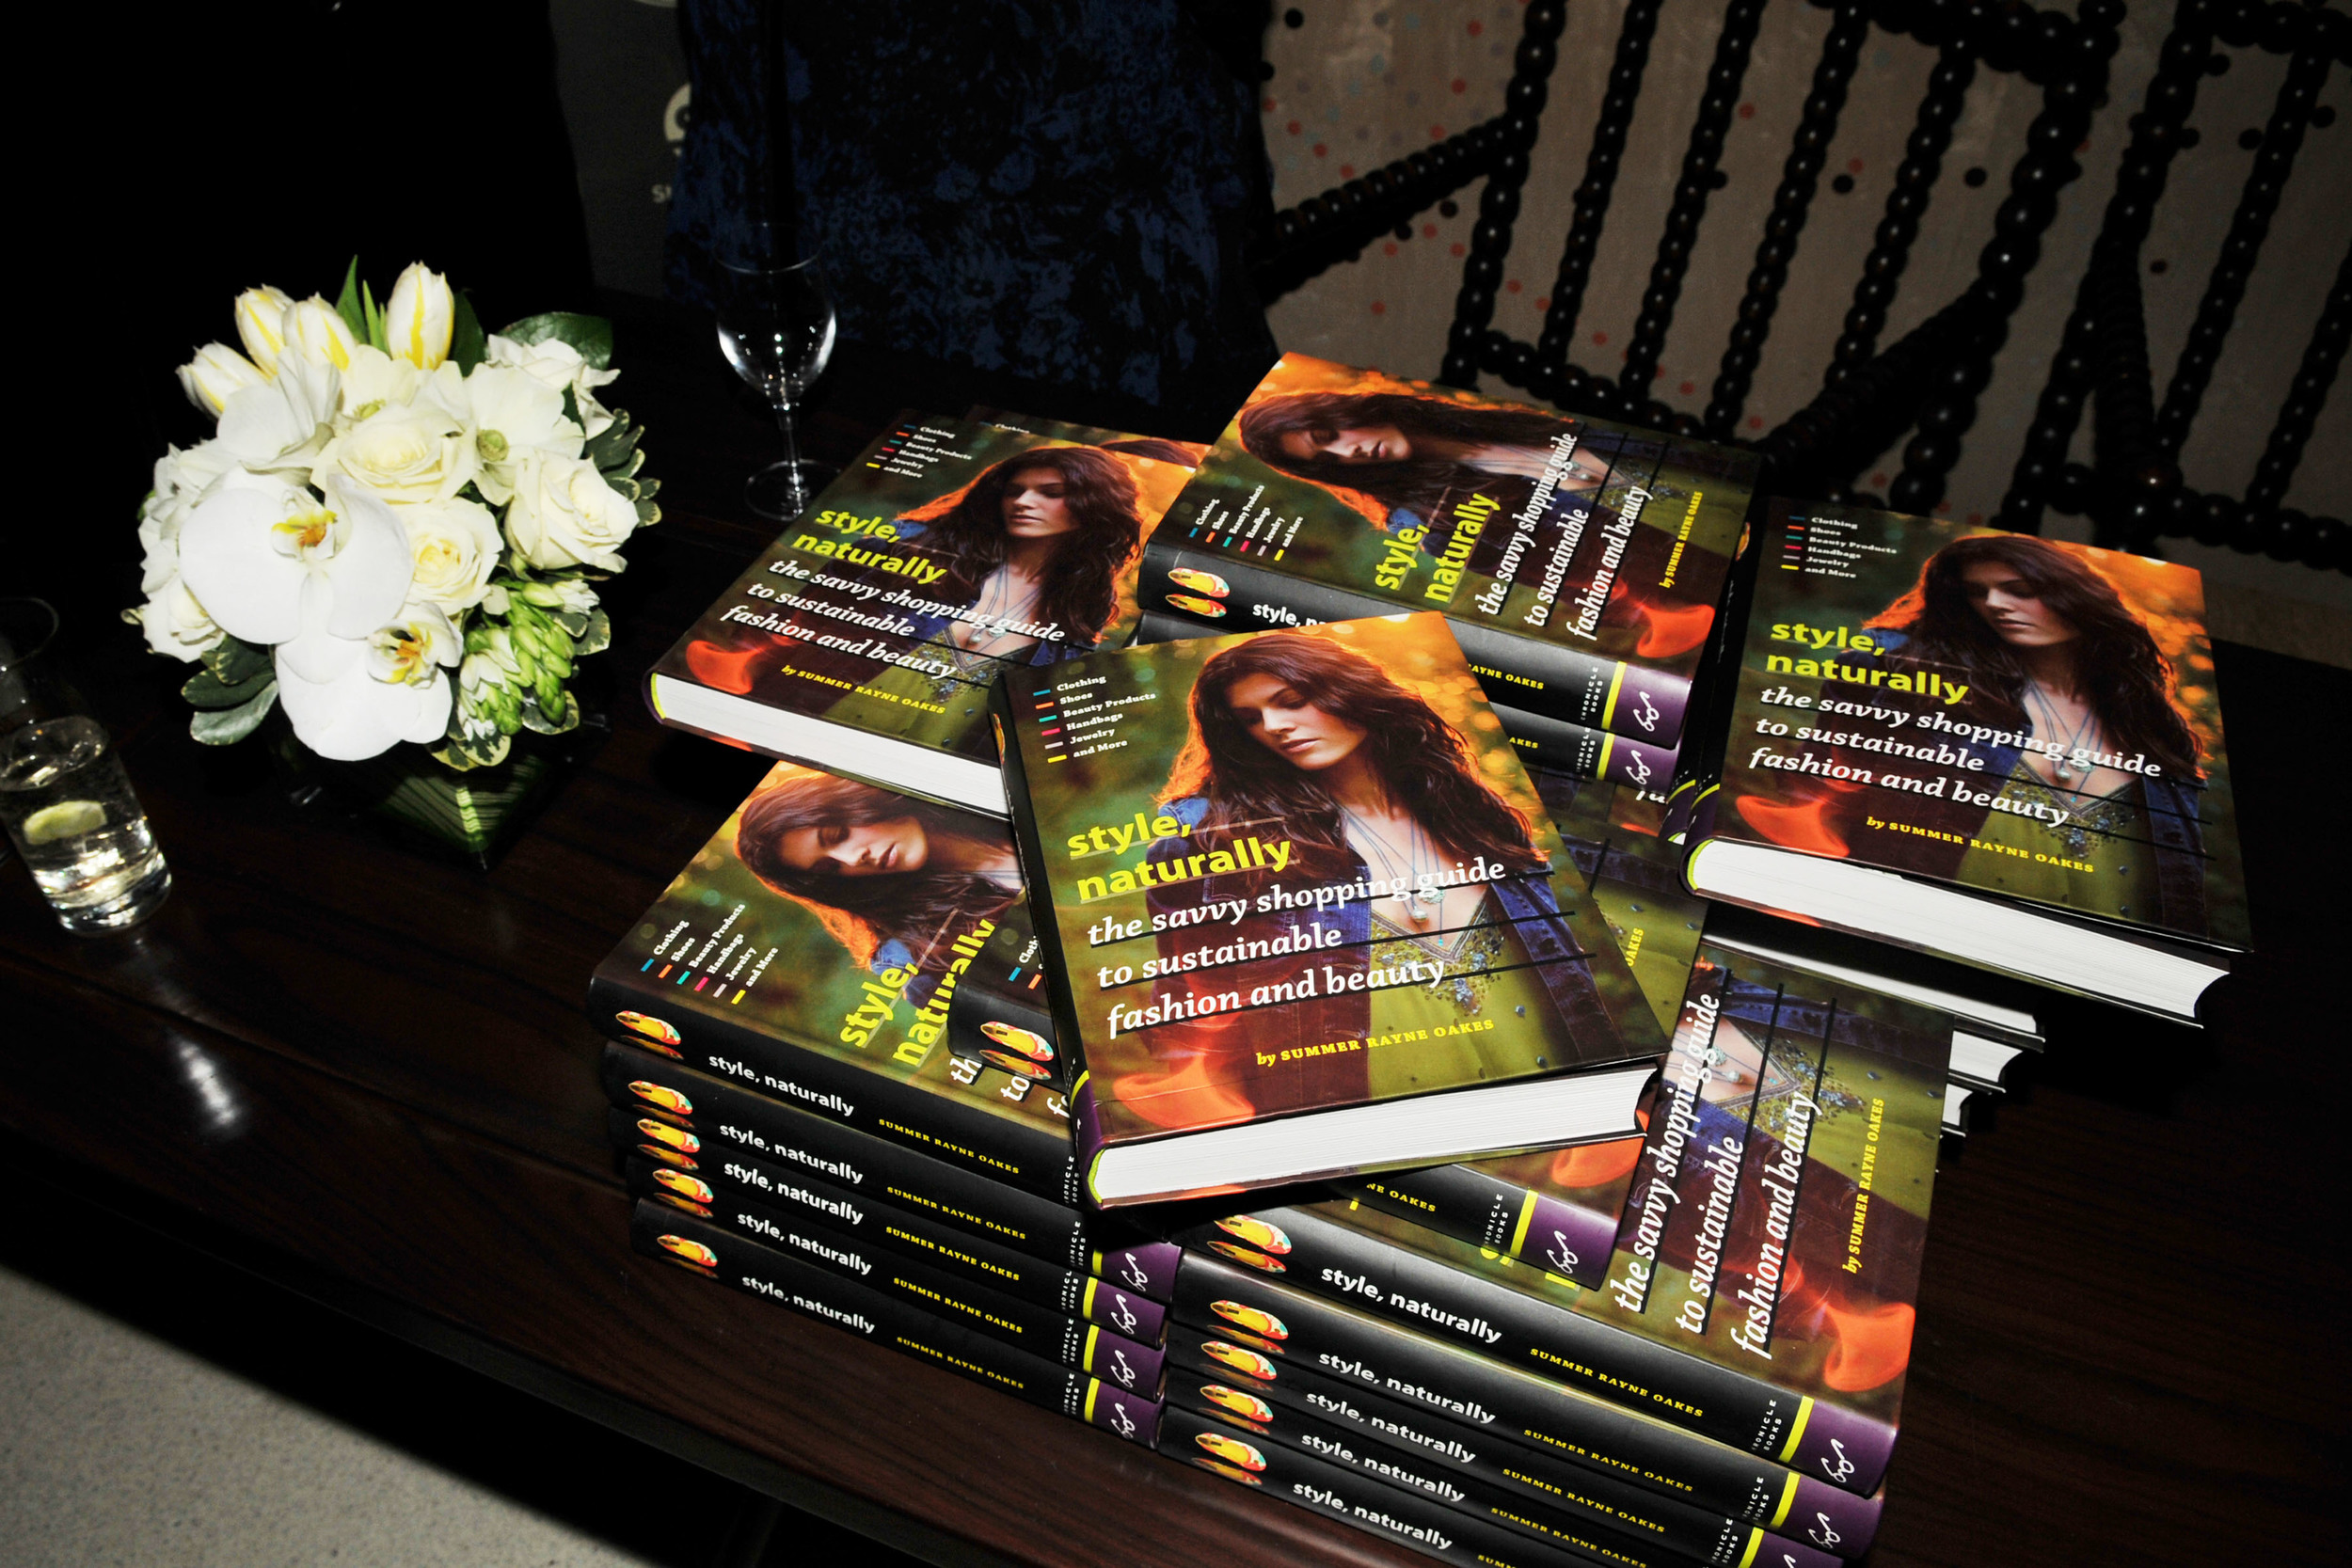 Books hot off the press at the launch party in NYC.